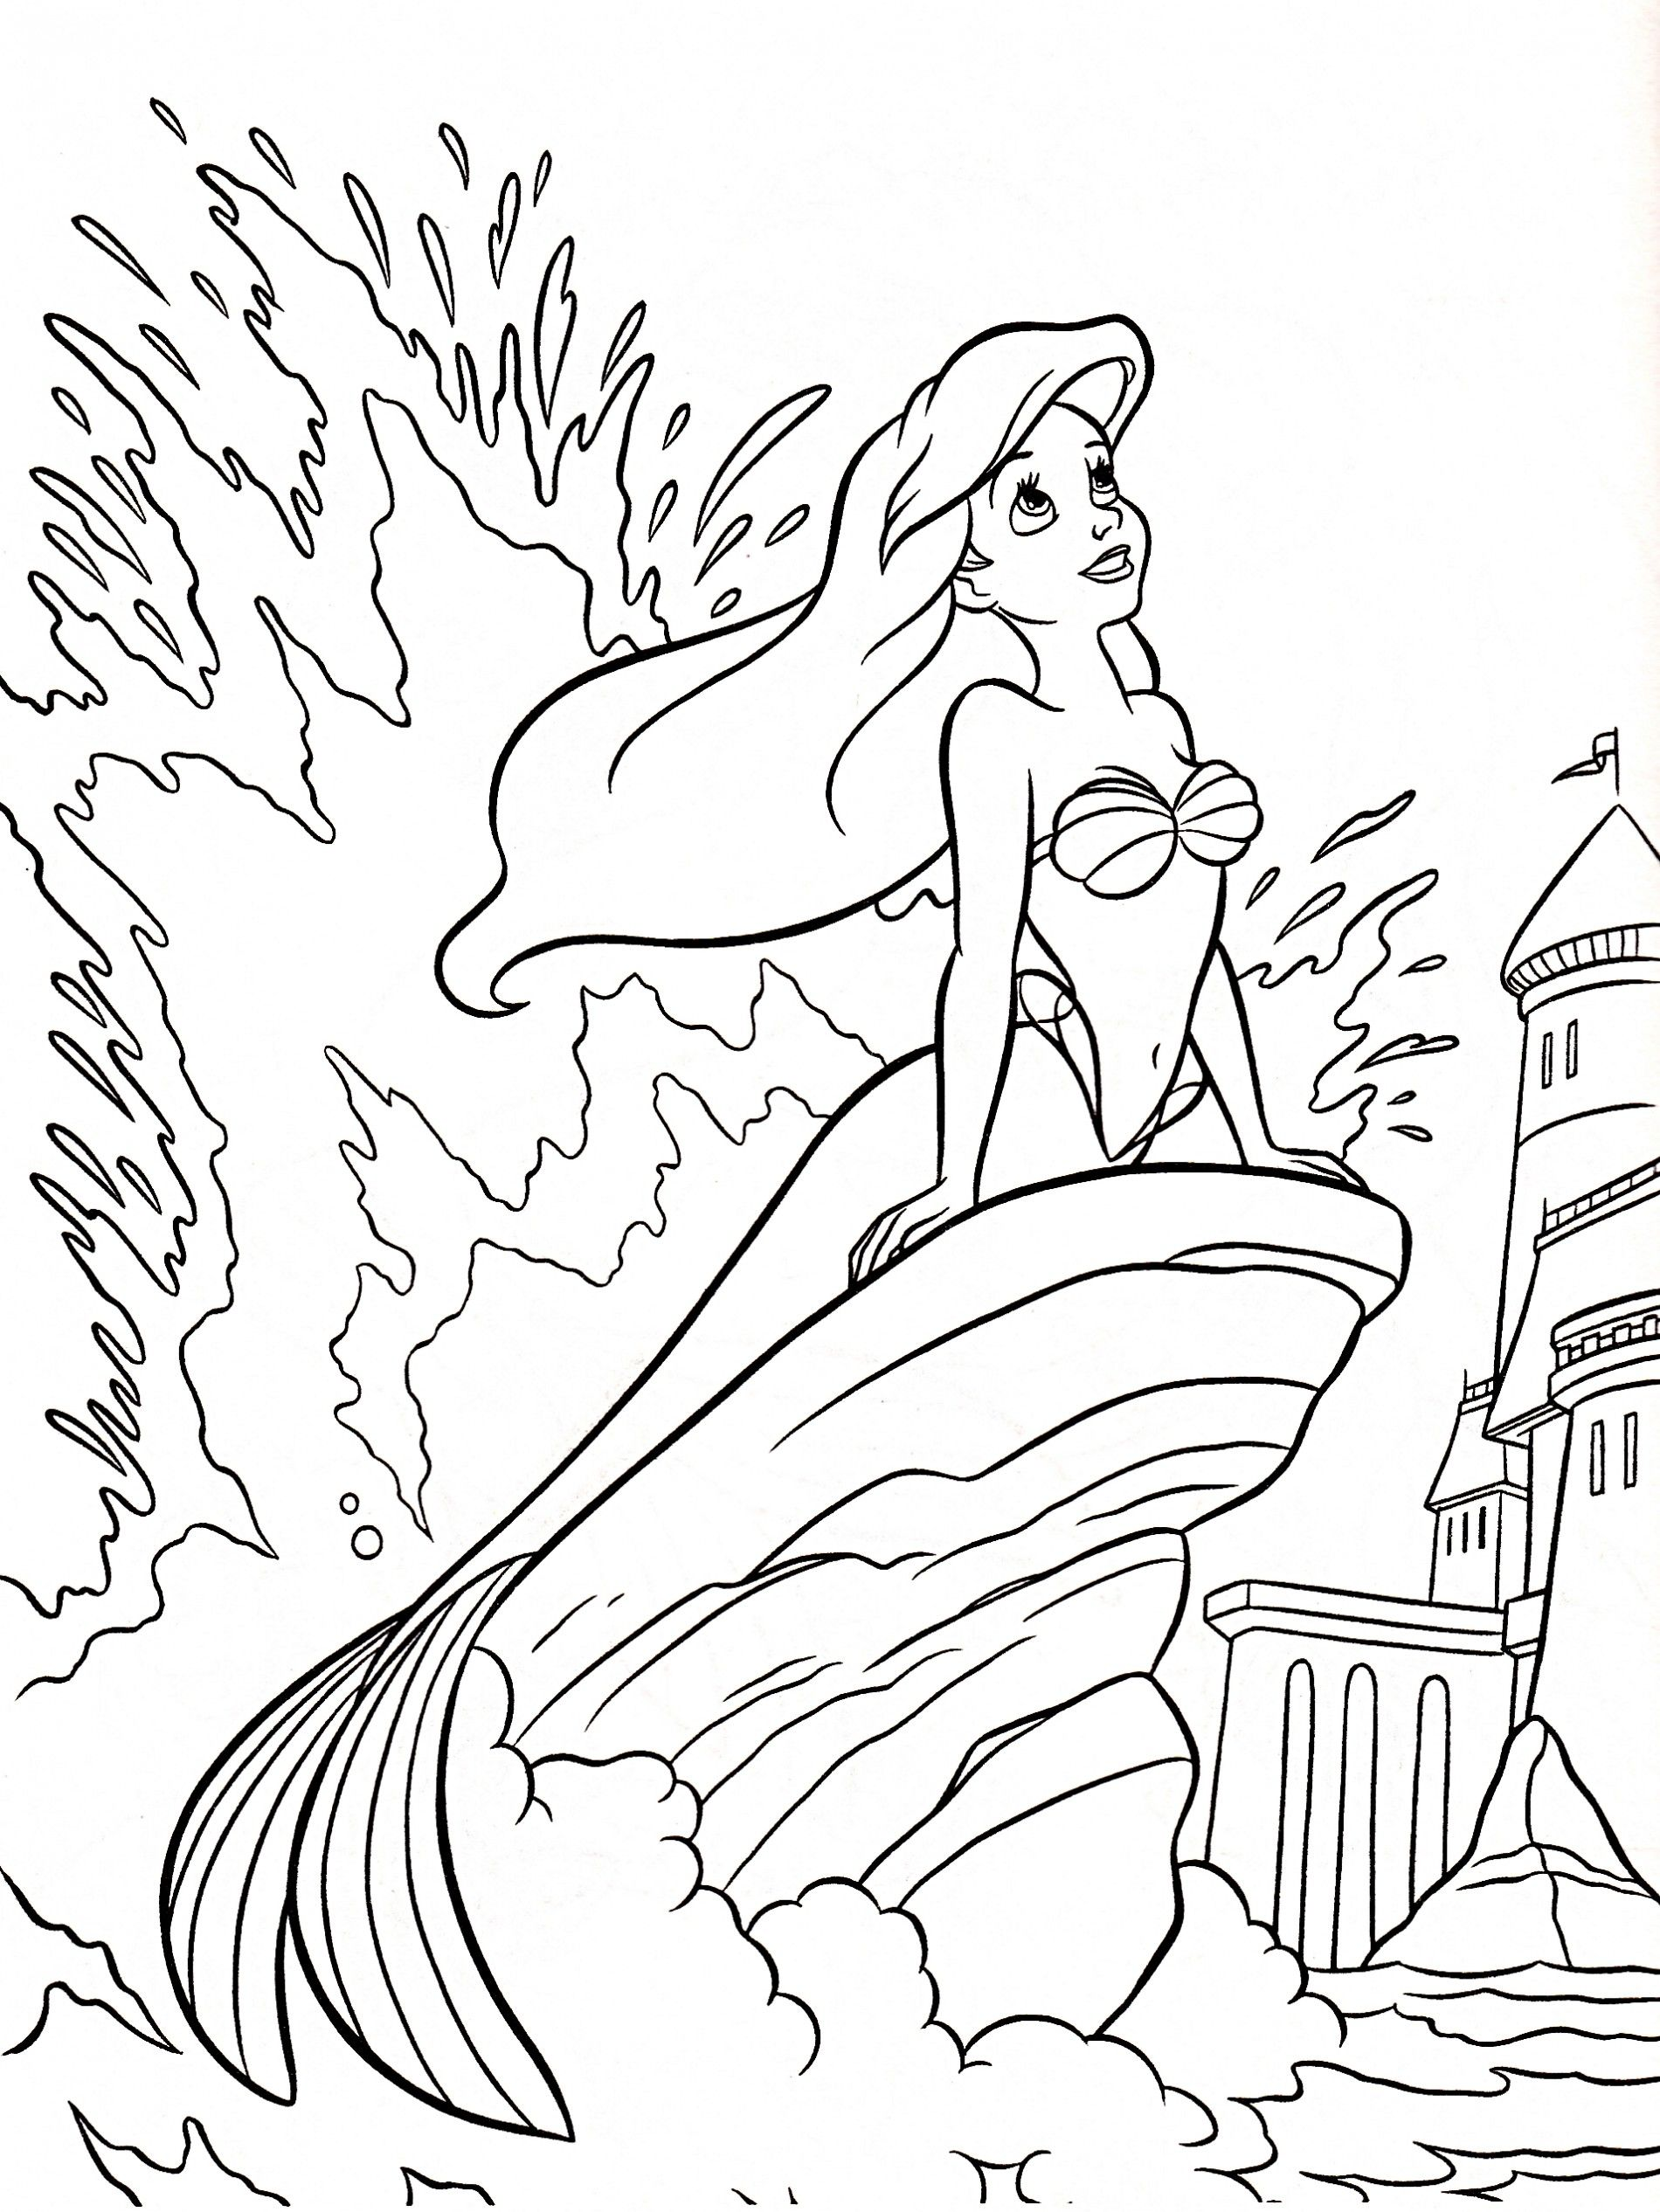 Little Mermaid Coloring Pages - pictures, photos, images | adult ...